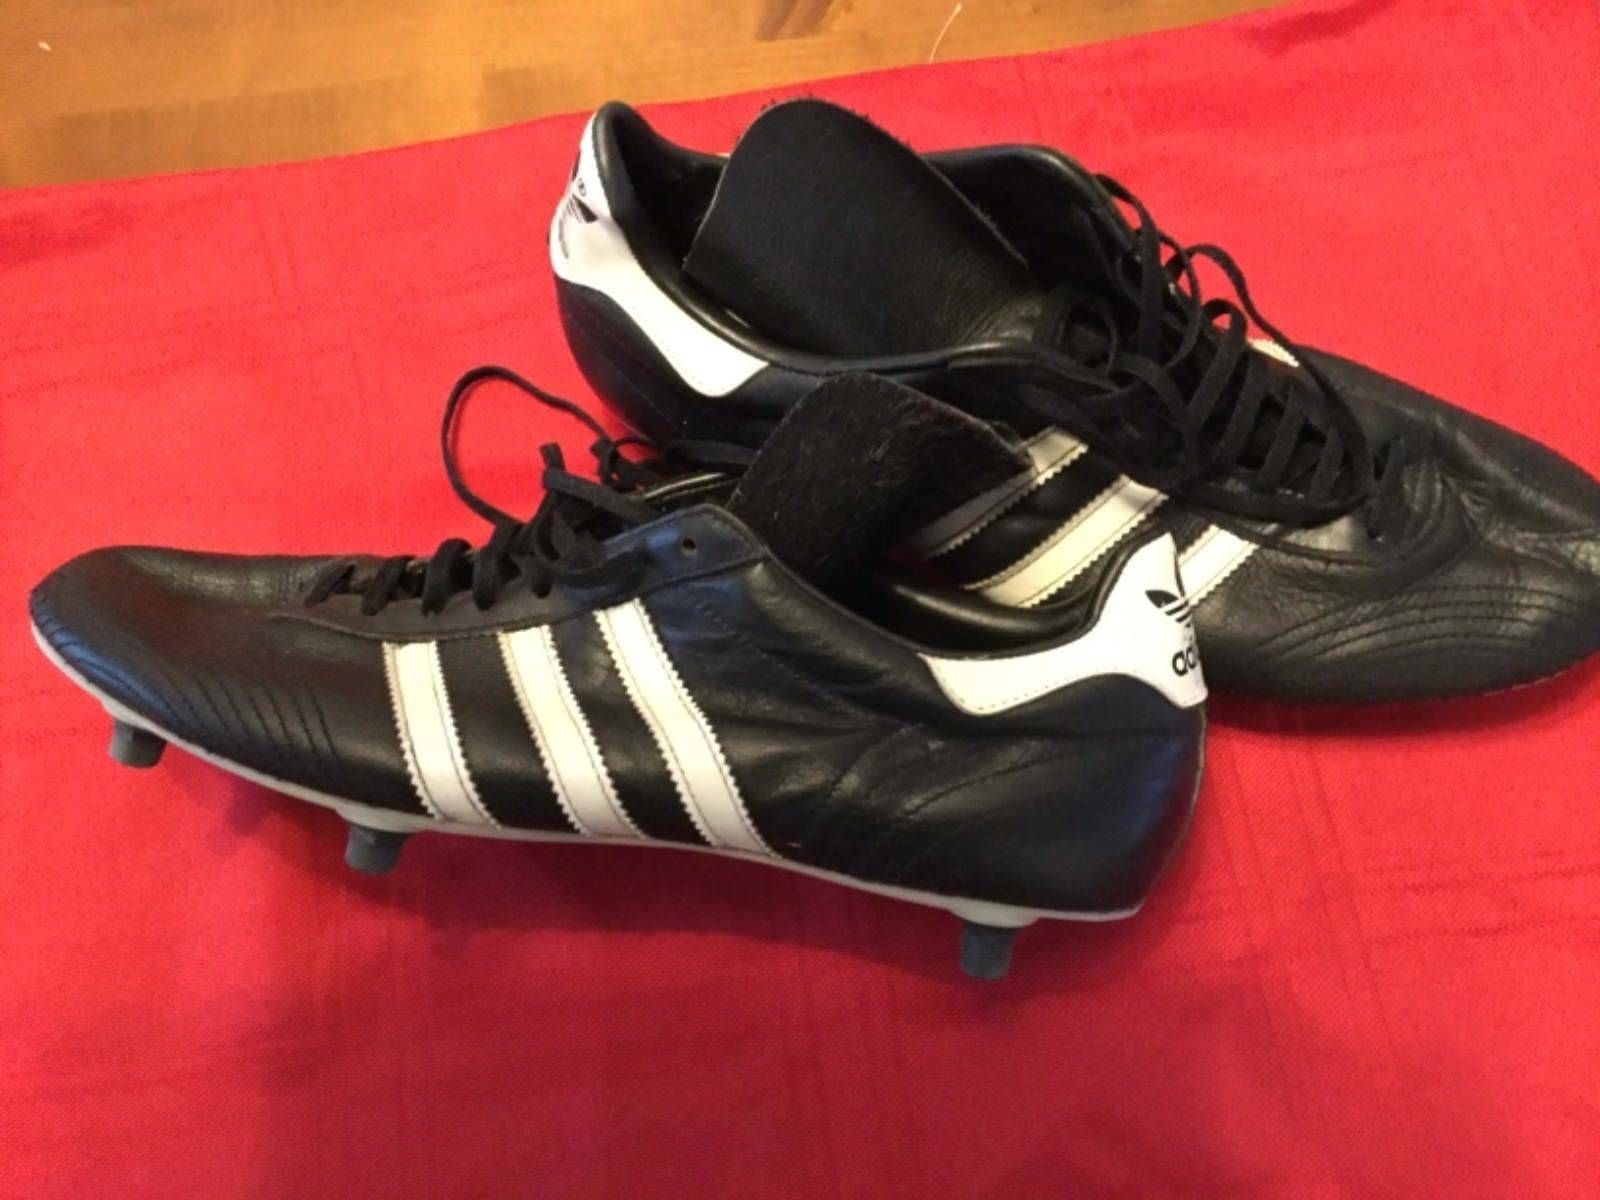 official photos b3ca9 53e45 ADIDAS 80 ZEPHYR RARE CLASSIC FOOTBALL BOOTS SIZE UK 12 MUST SEE  eBay